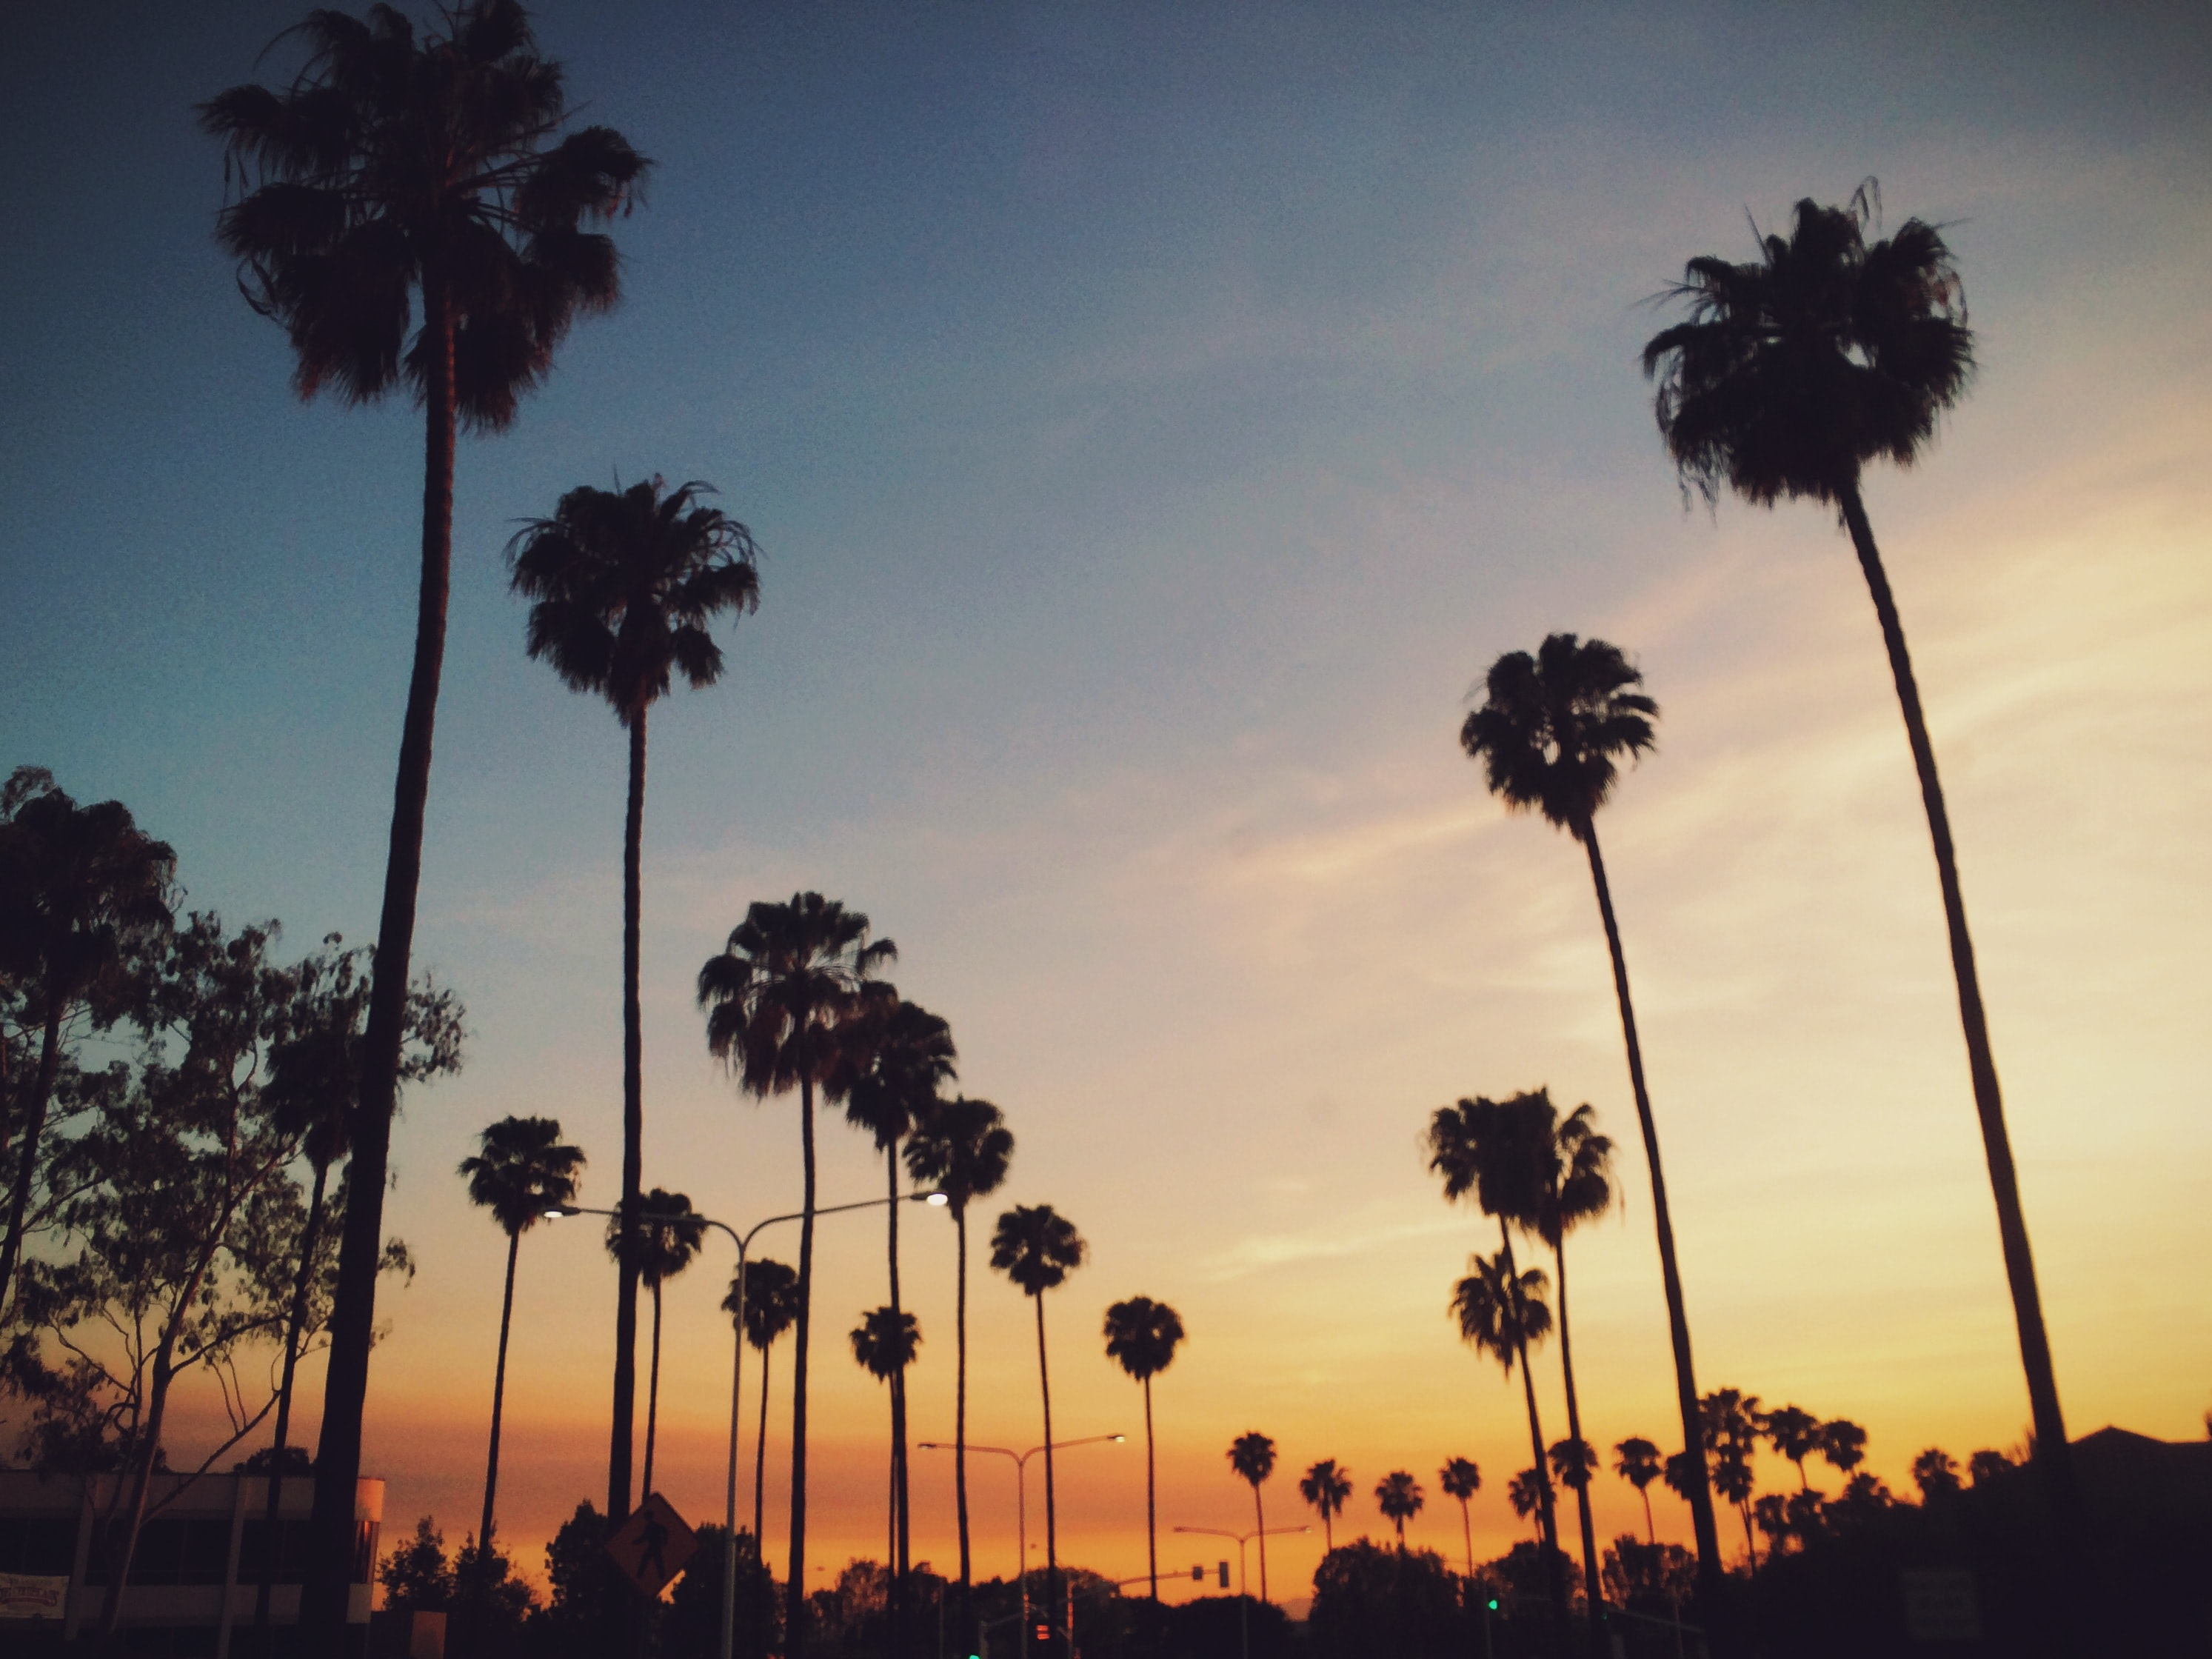 Warm summer evening with palm tree dancing to the wind in the sunset